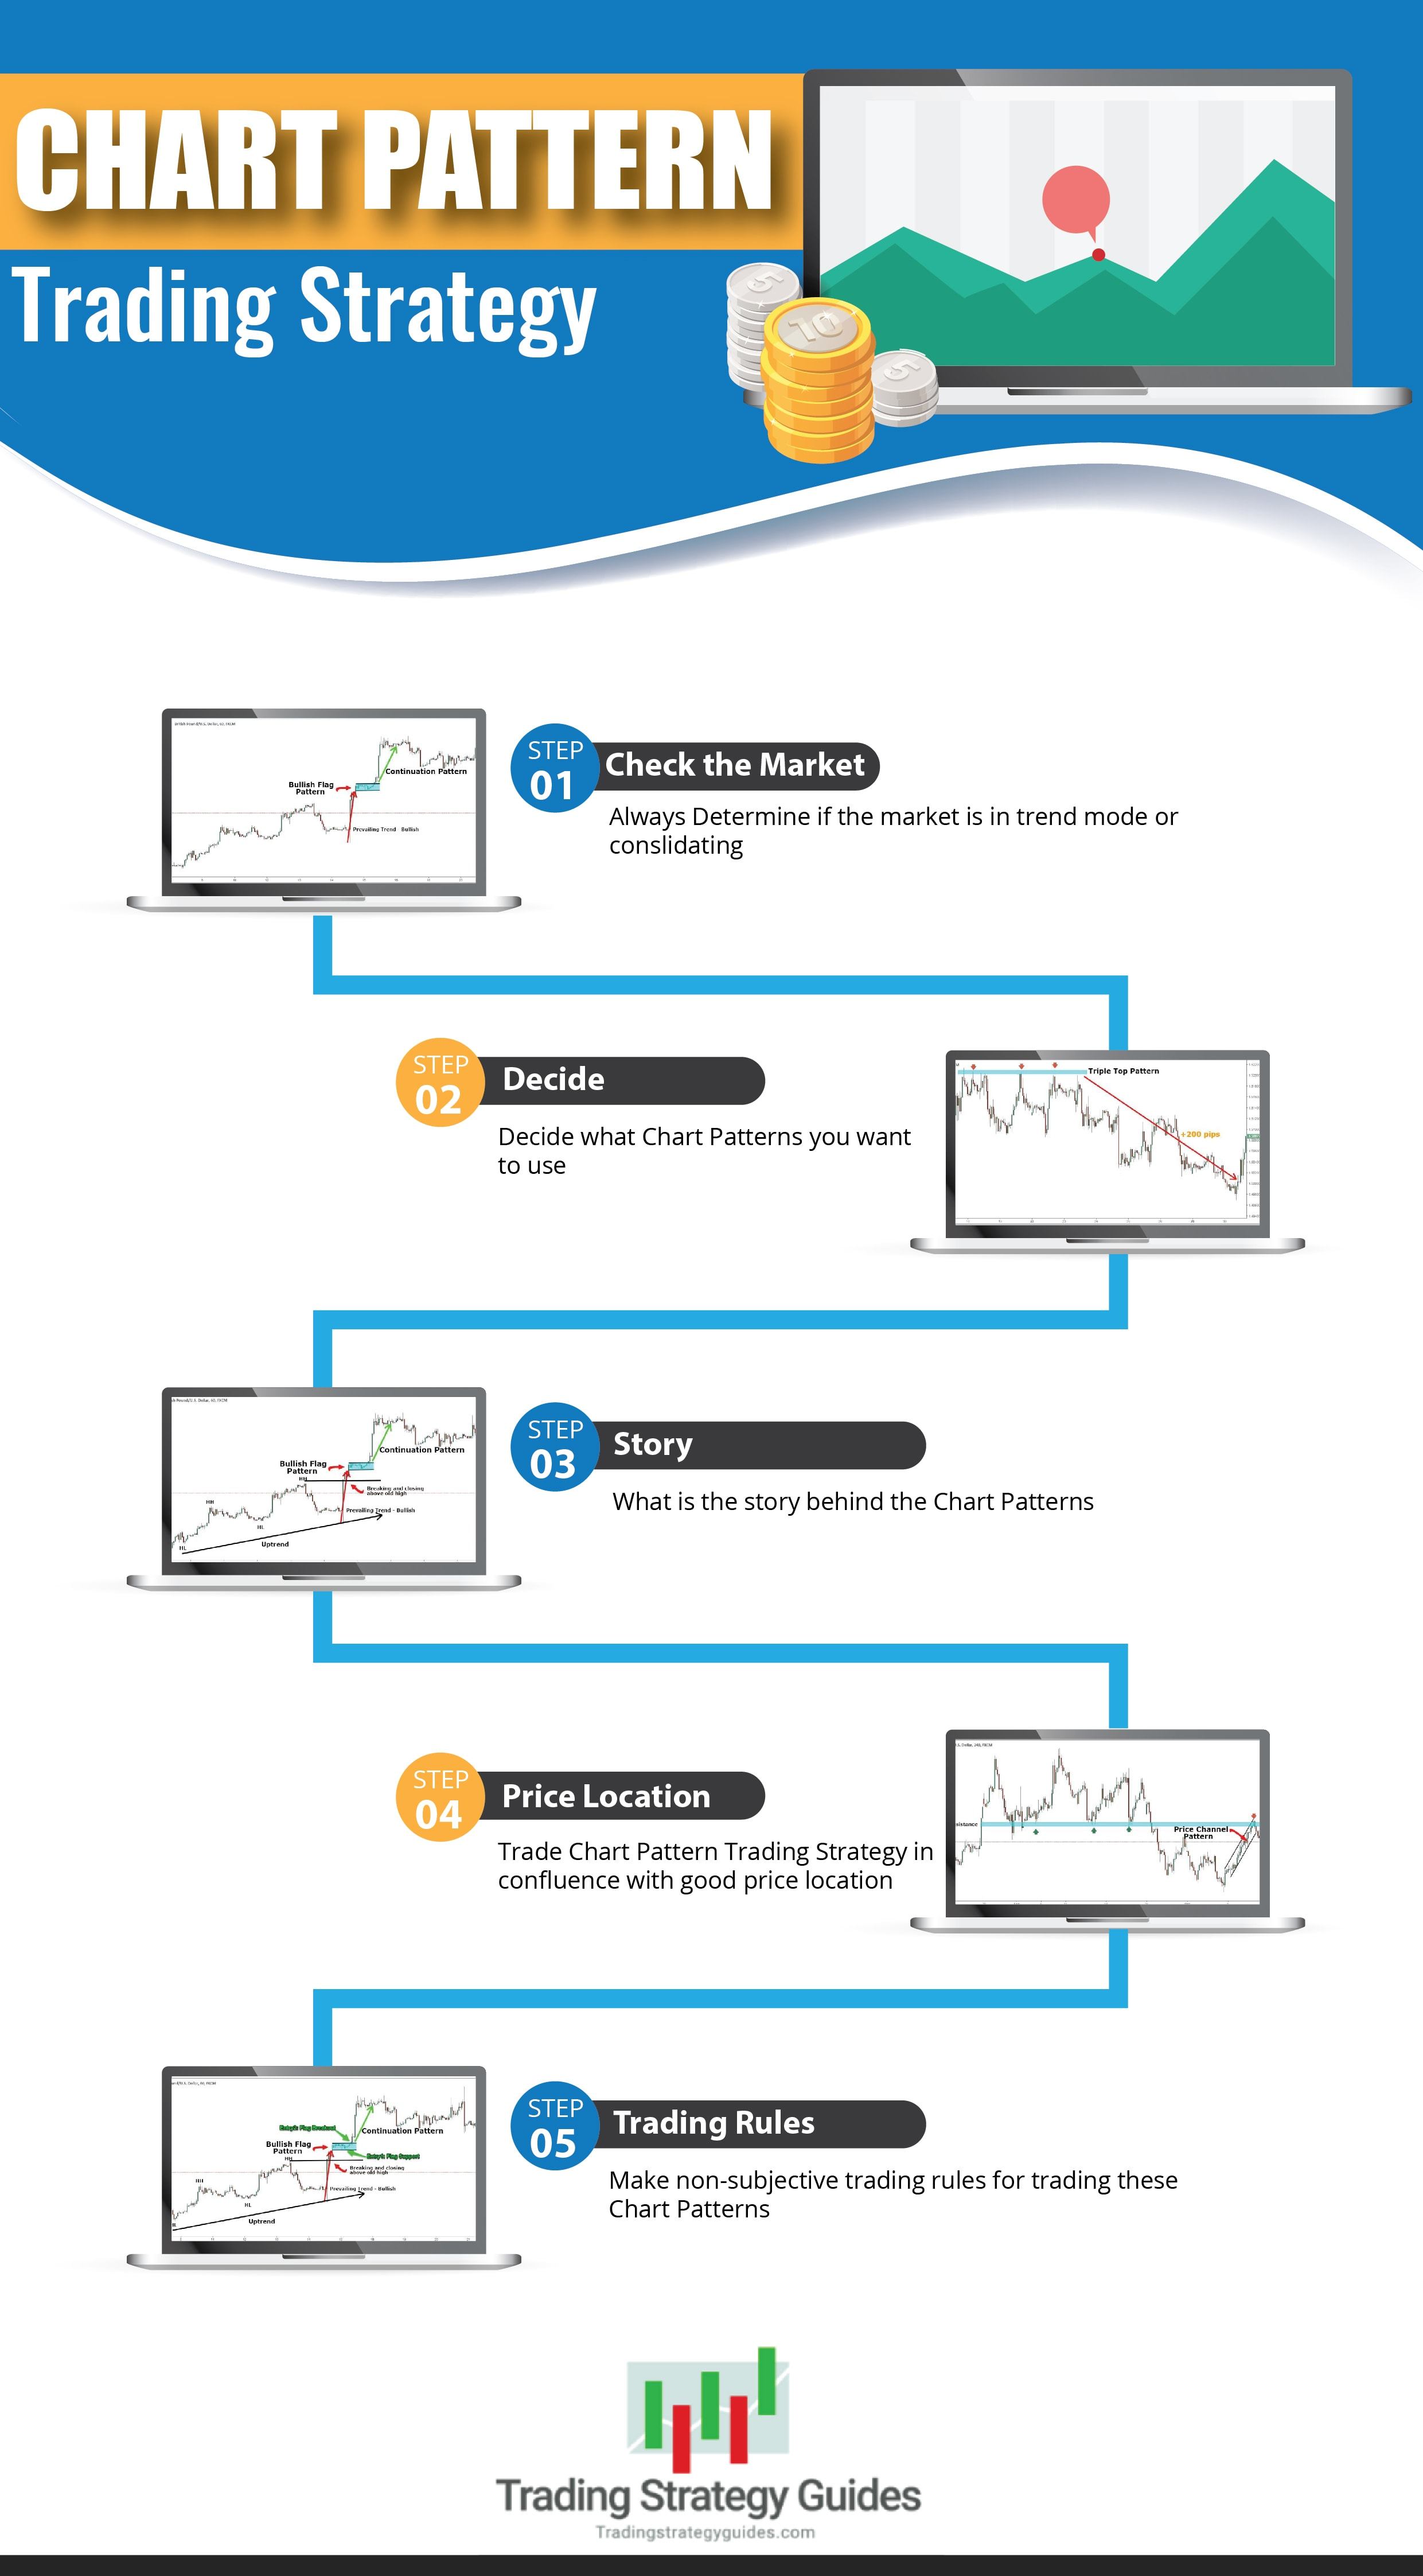 chart pattern trading strategy infographic